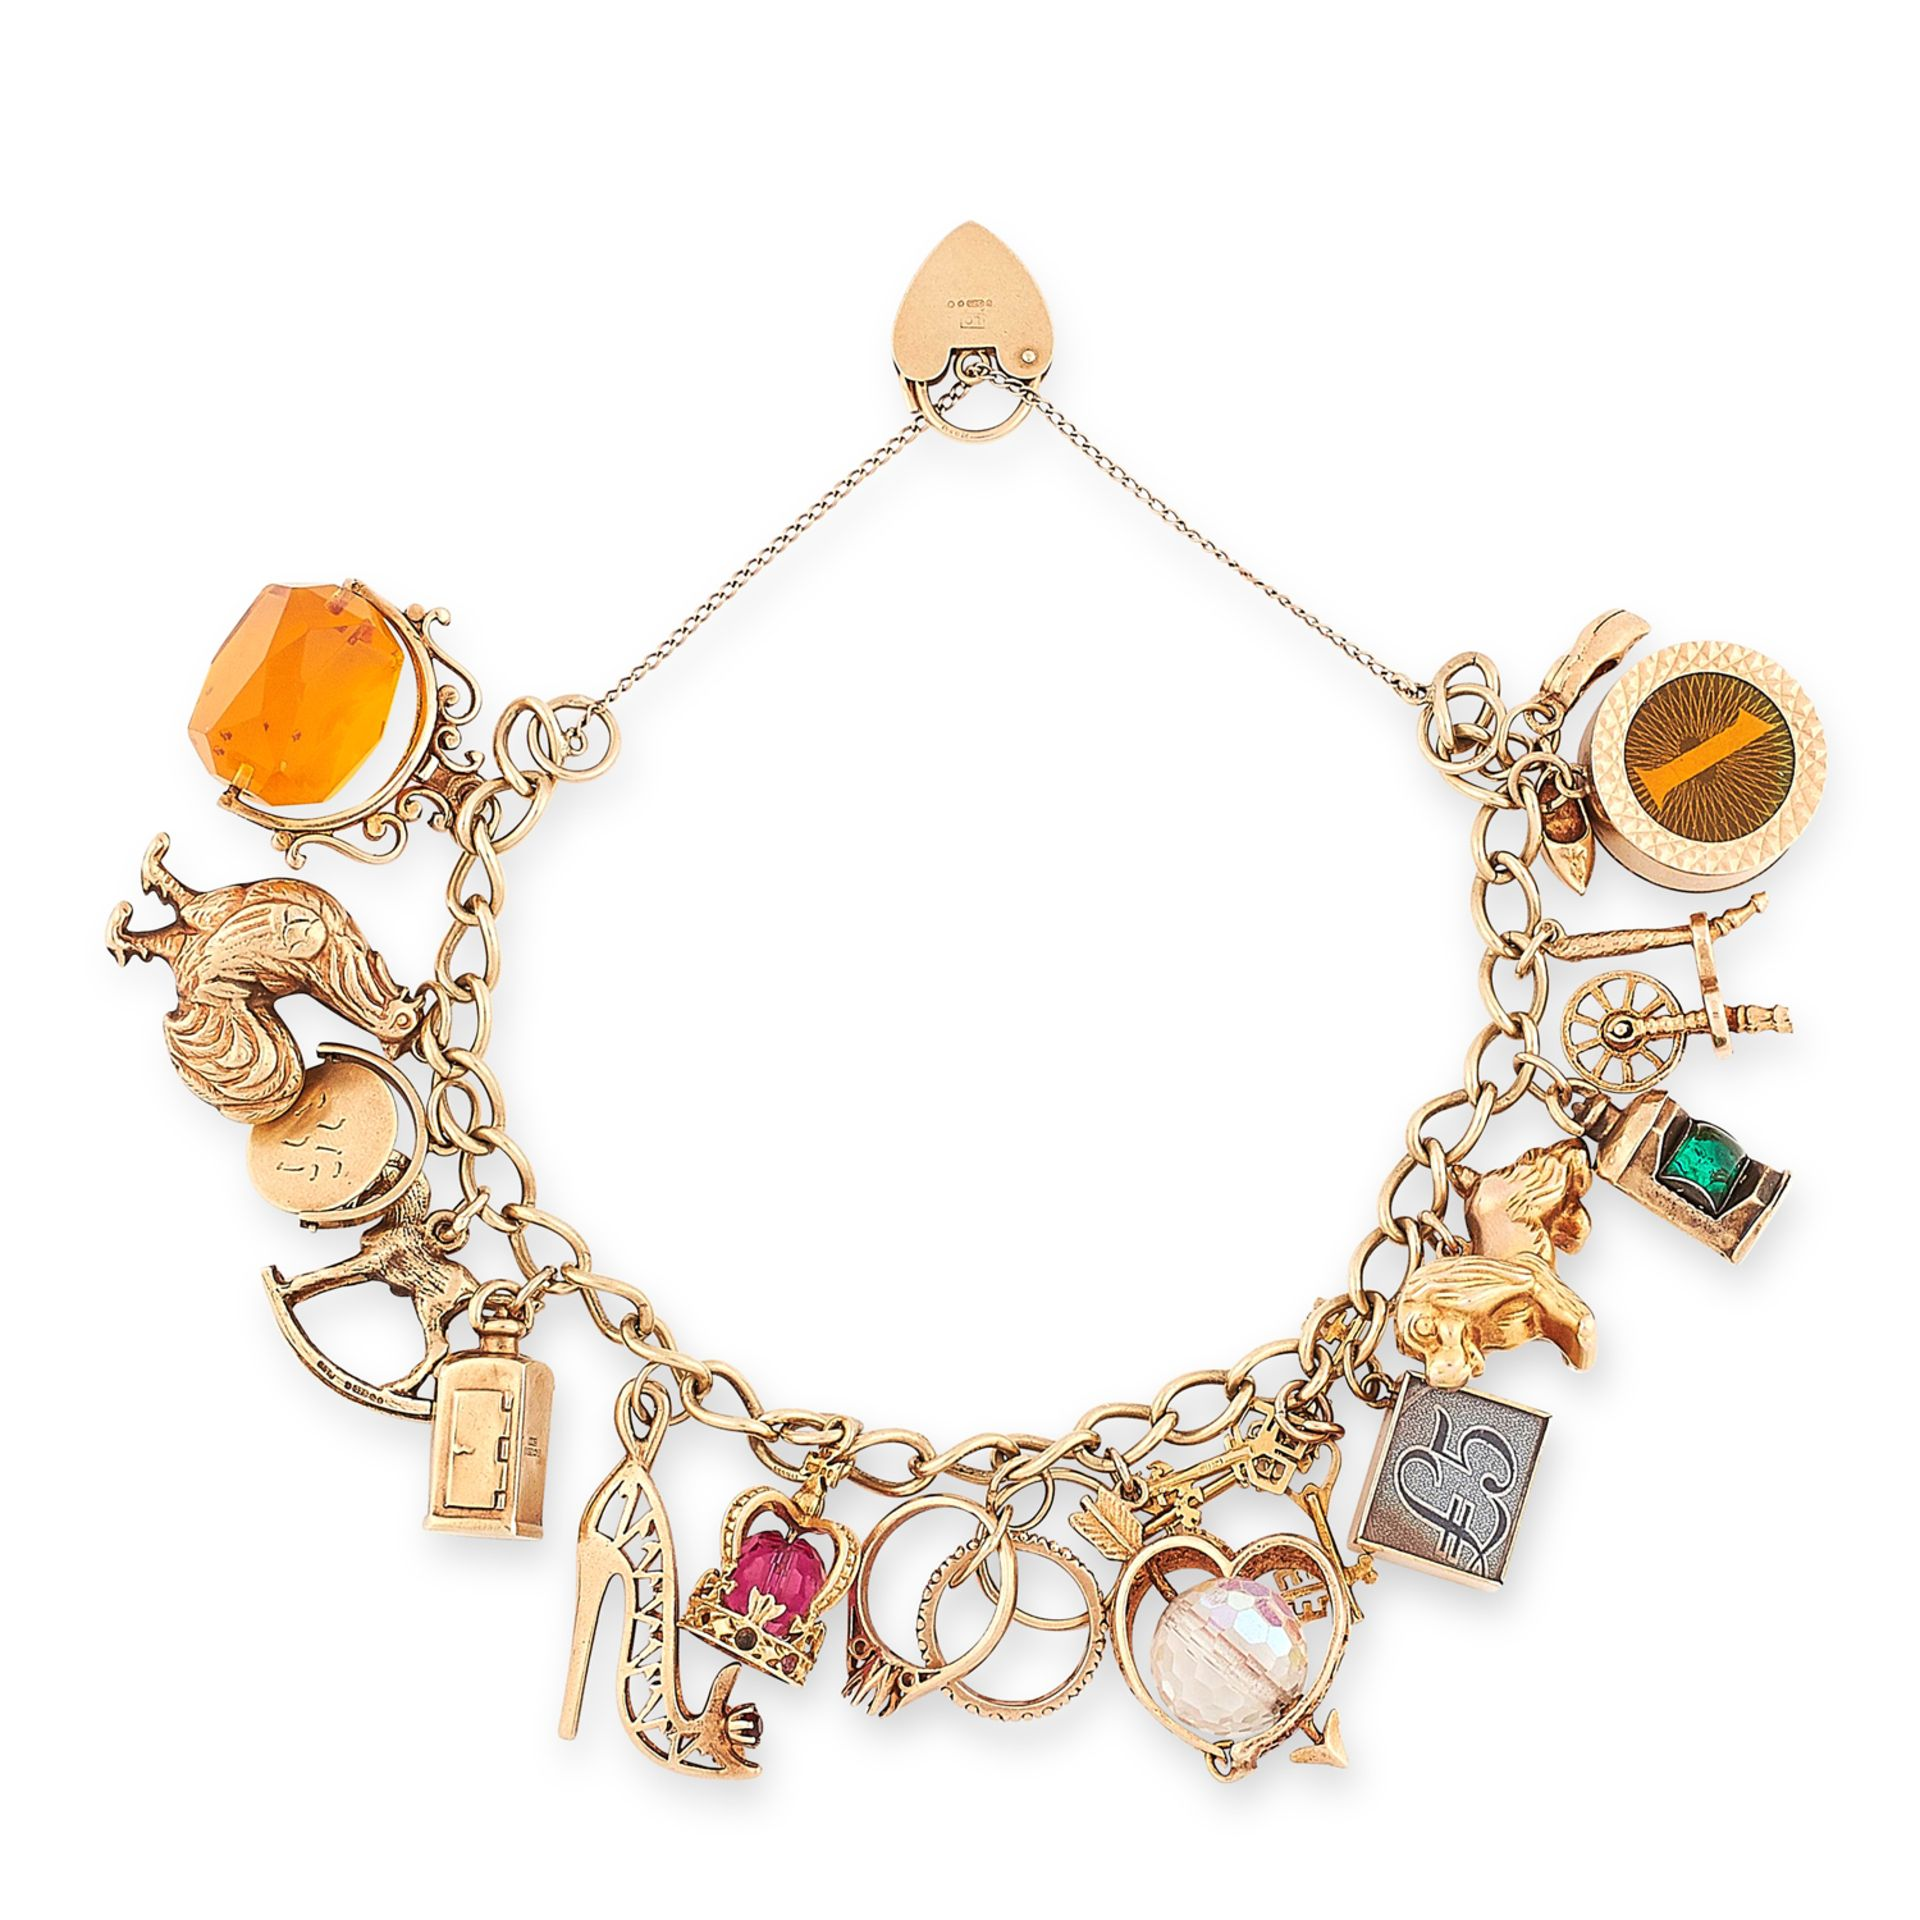 A VINTAGE CHARM BRACELET in yellow gold, suspending fifteen charms including a dog, cockerel, shoes,